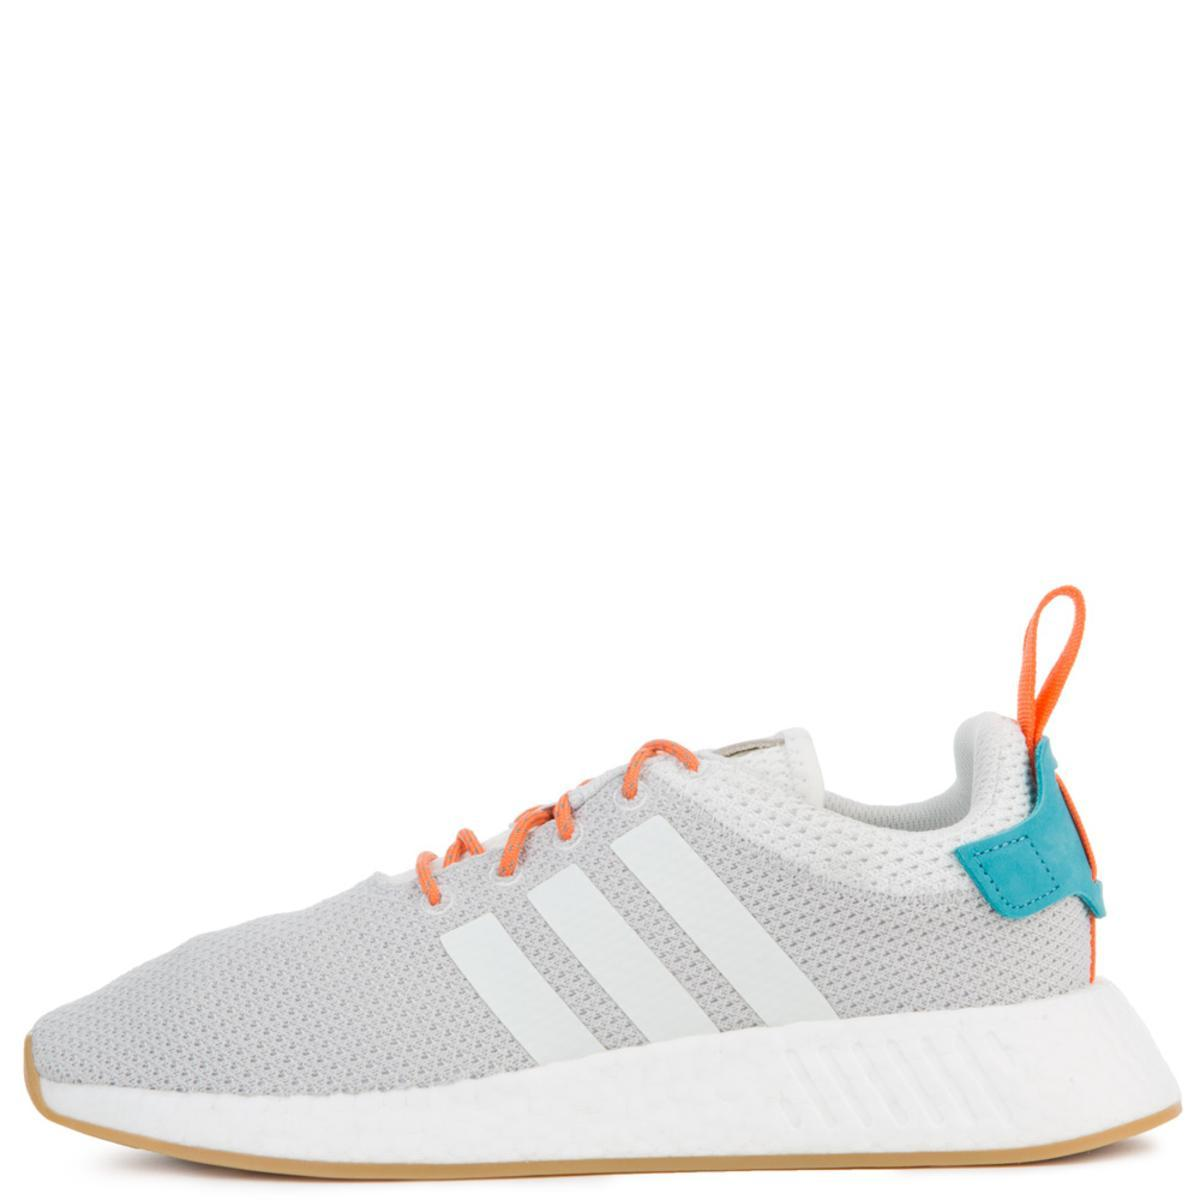 The Nmd R2 Summer In White Grey And Gum3